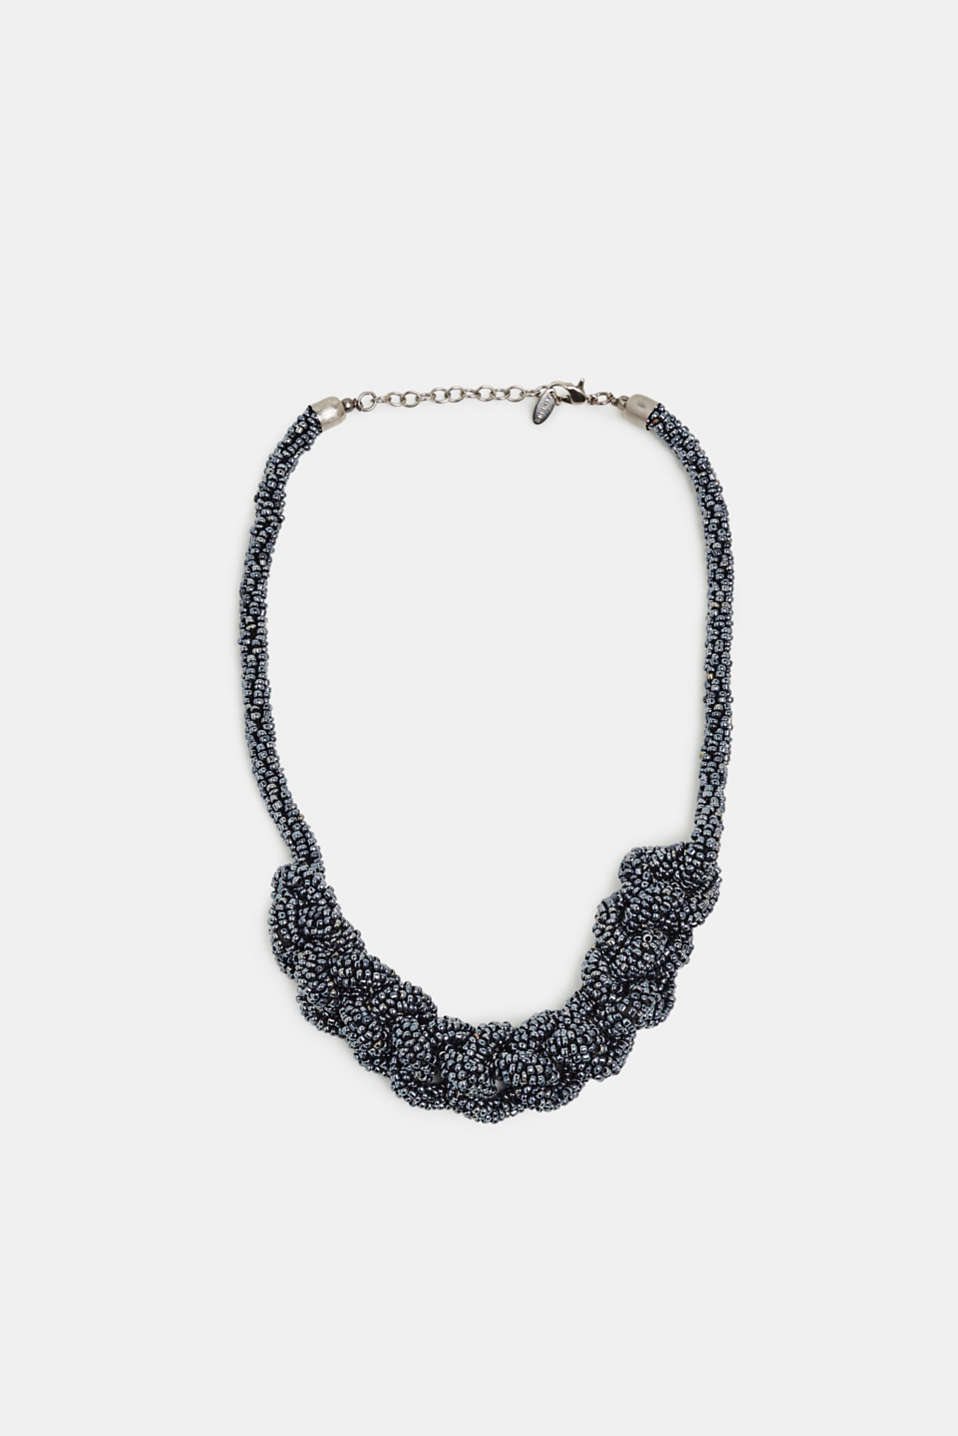 Esprit - Statement necklace with plastic beads